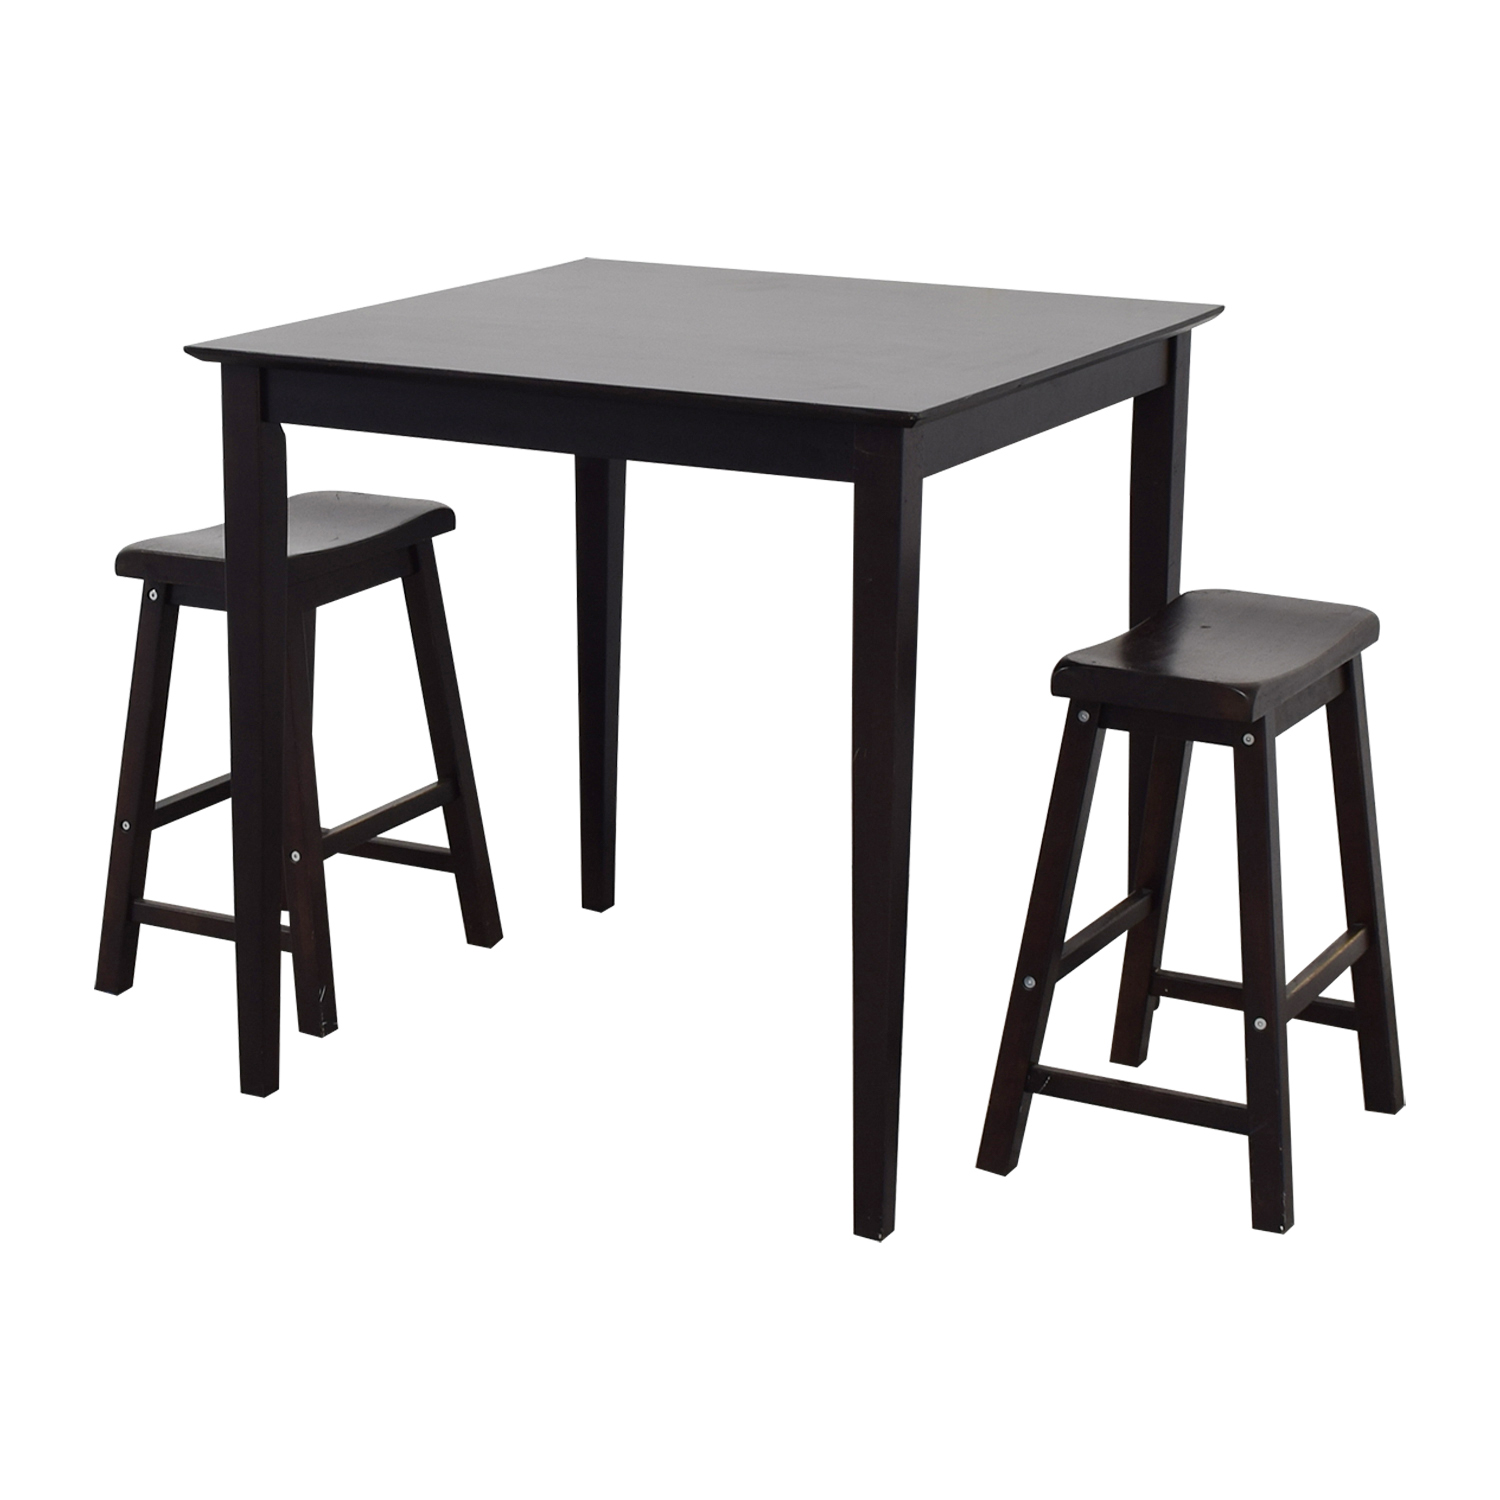 80 off ikea ikea bar table and stools tables. Black Bedroom Furniture Sets. Home Design Ideas